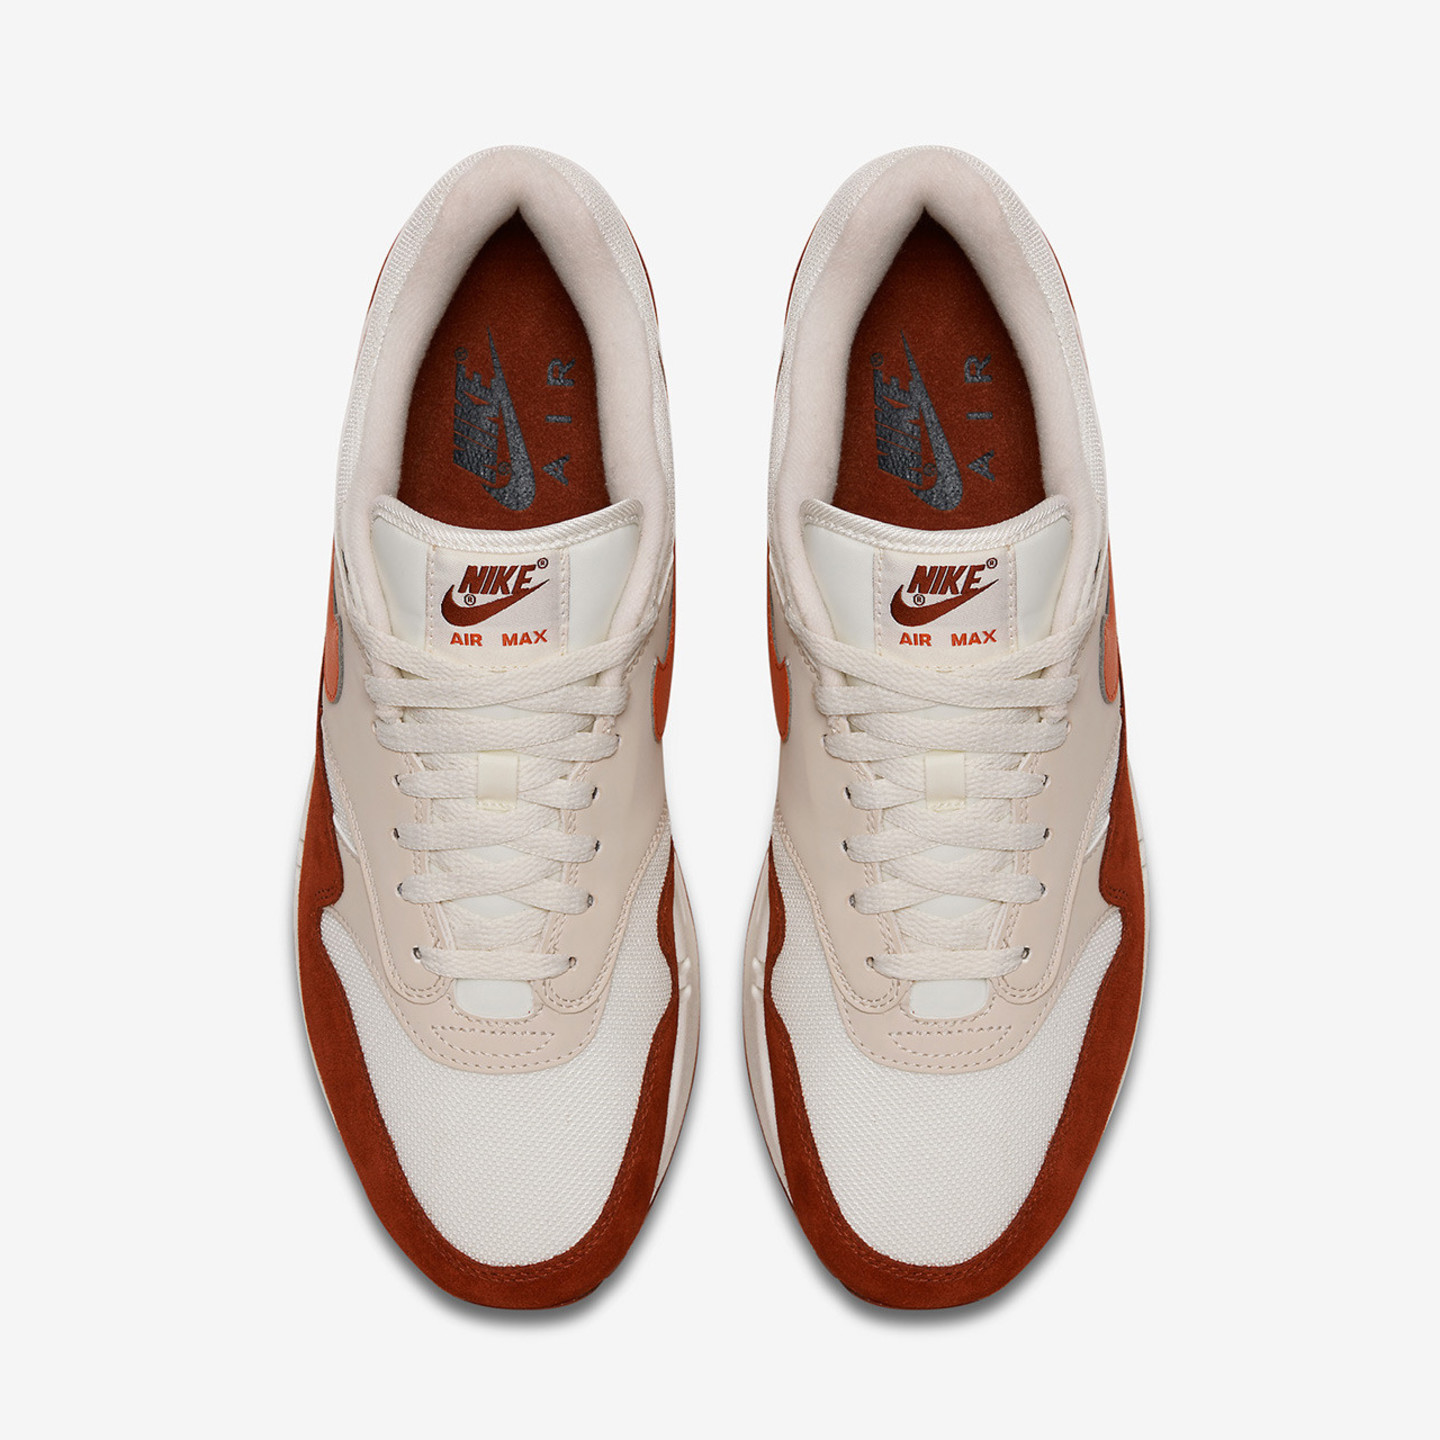 Nike Air Max 1 'Curry 2.0' Sail / Vintage Coral / Mars Stone AH8145-104